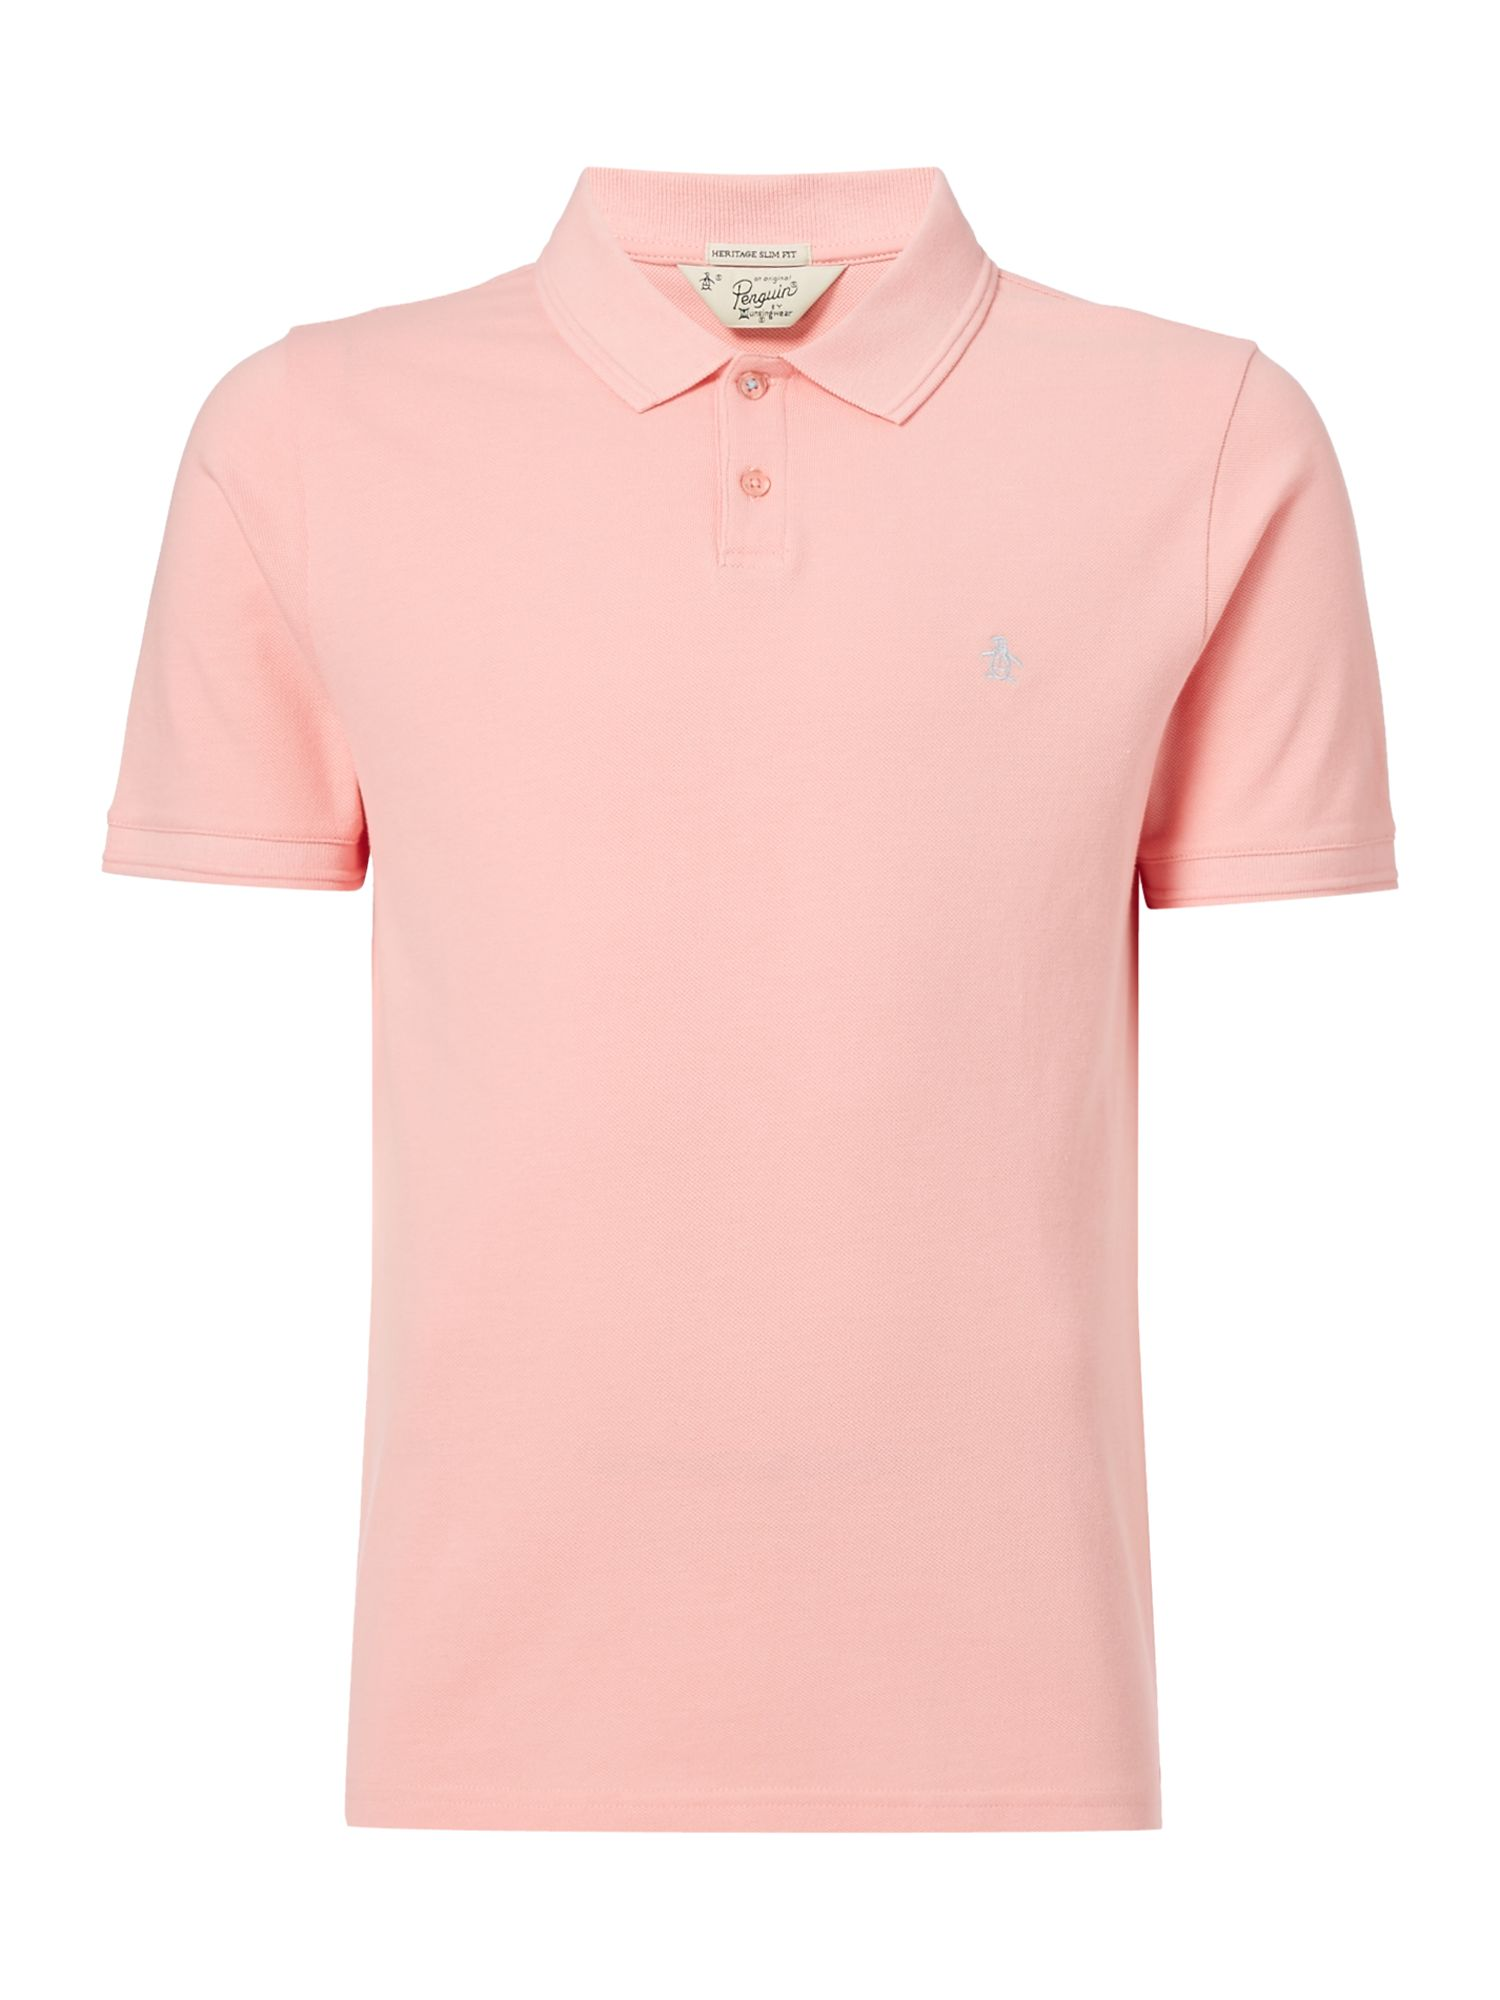 Men's Original Penguin Raised Rib Polo Shirt, Light Pink